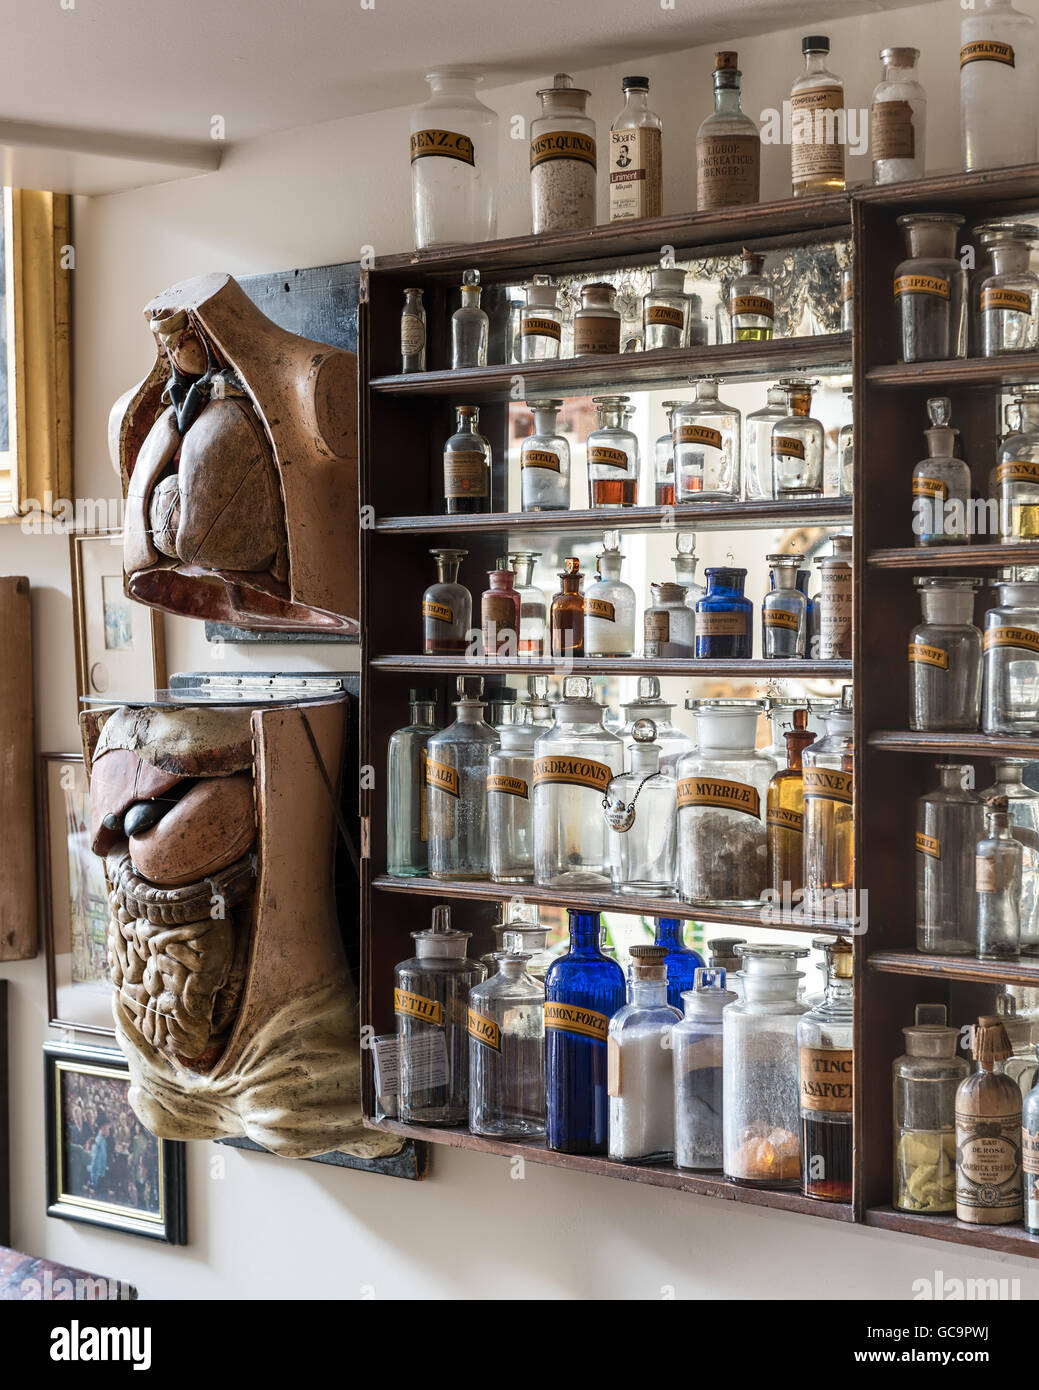 Apothecary jars with anatomical models in London apartment filled with antique curios - Stock Image